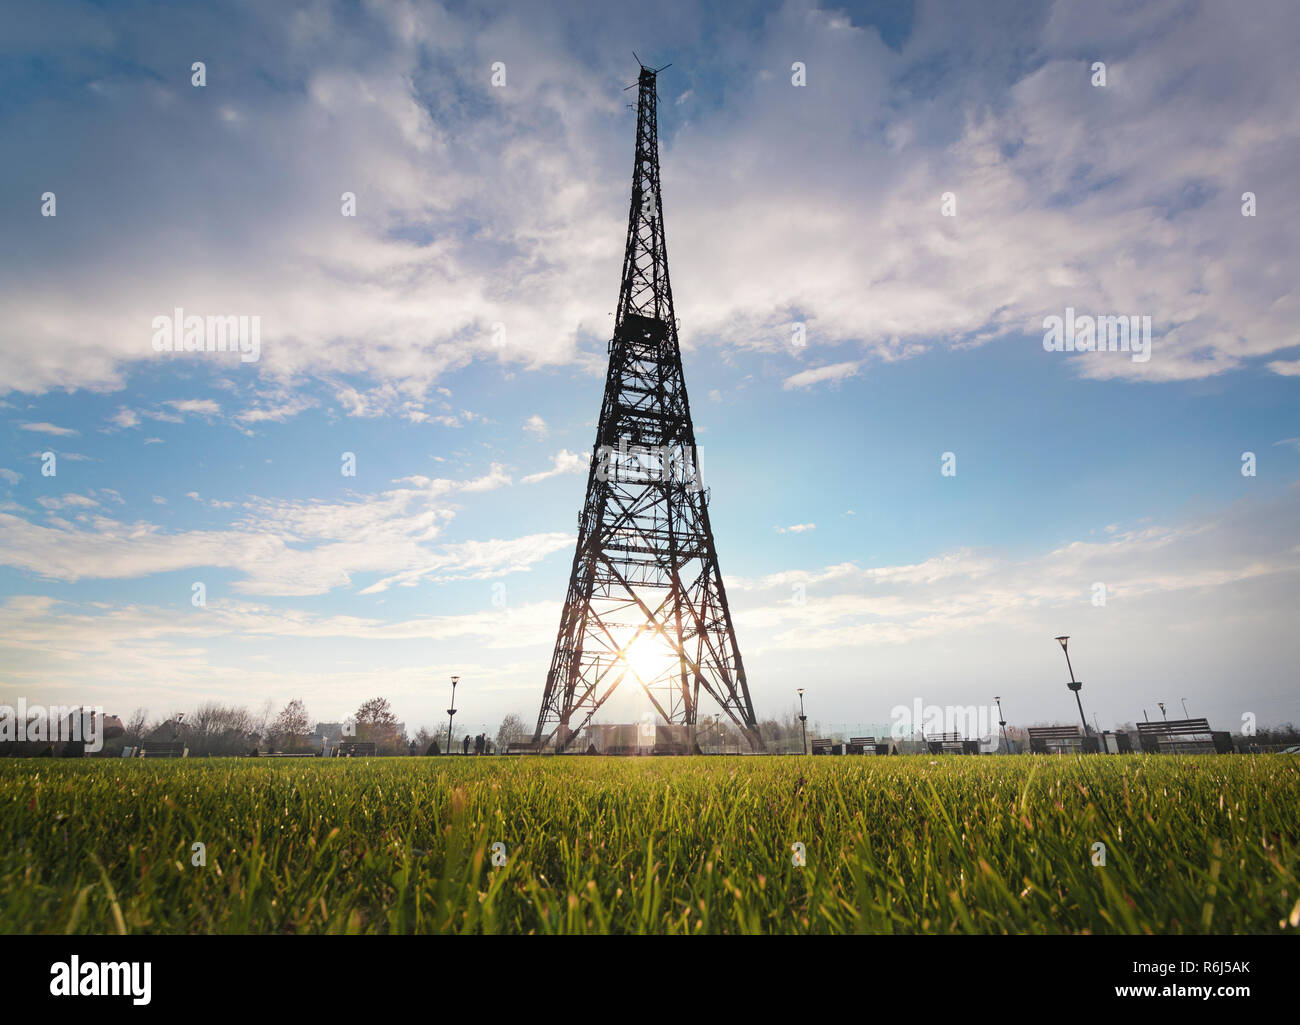 Historic radiostation tower in Gliwice in the contour light, Poland. Europe - Stock Image